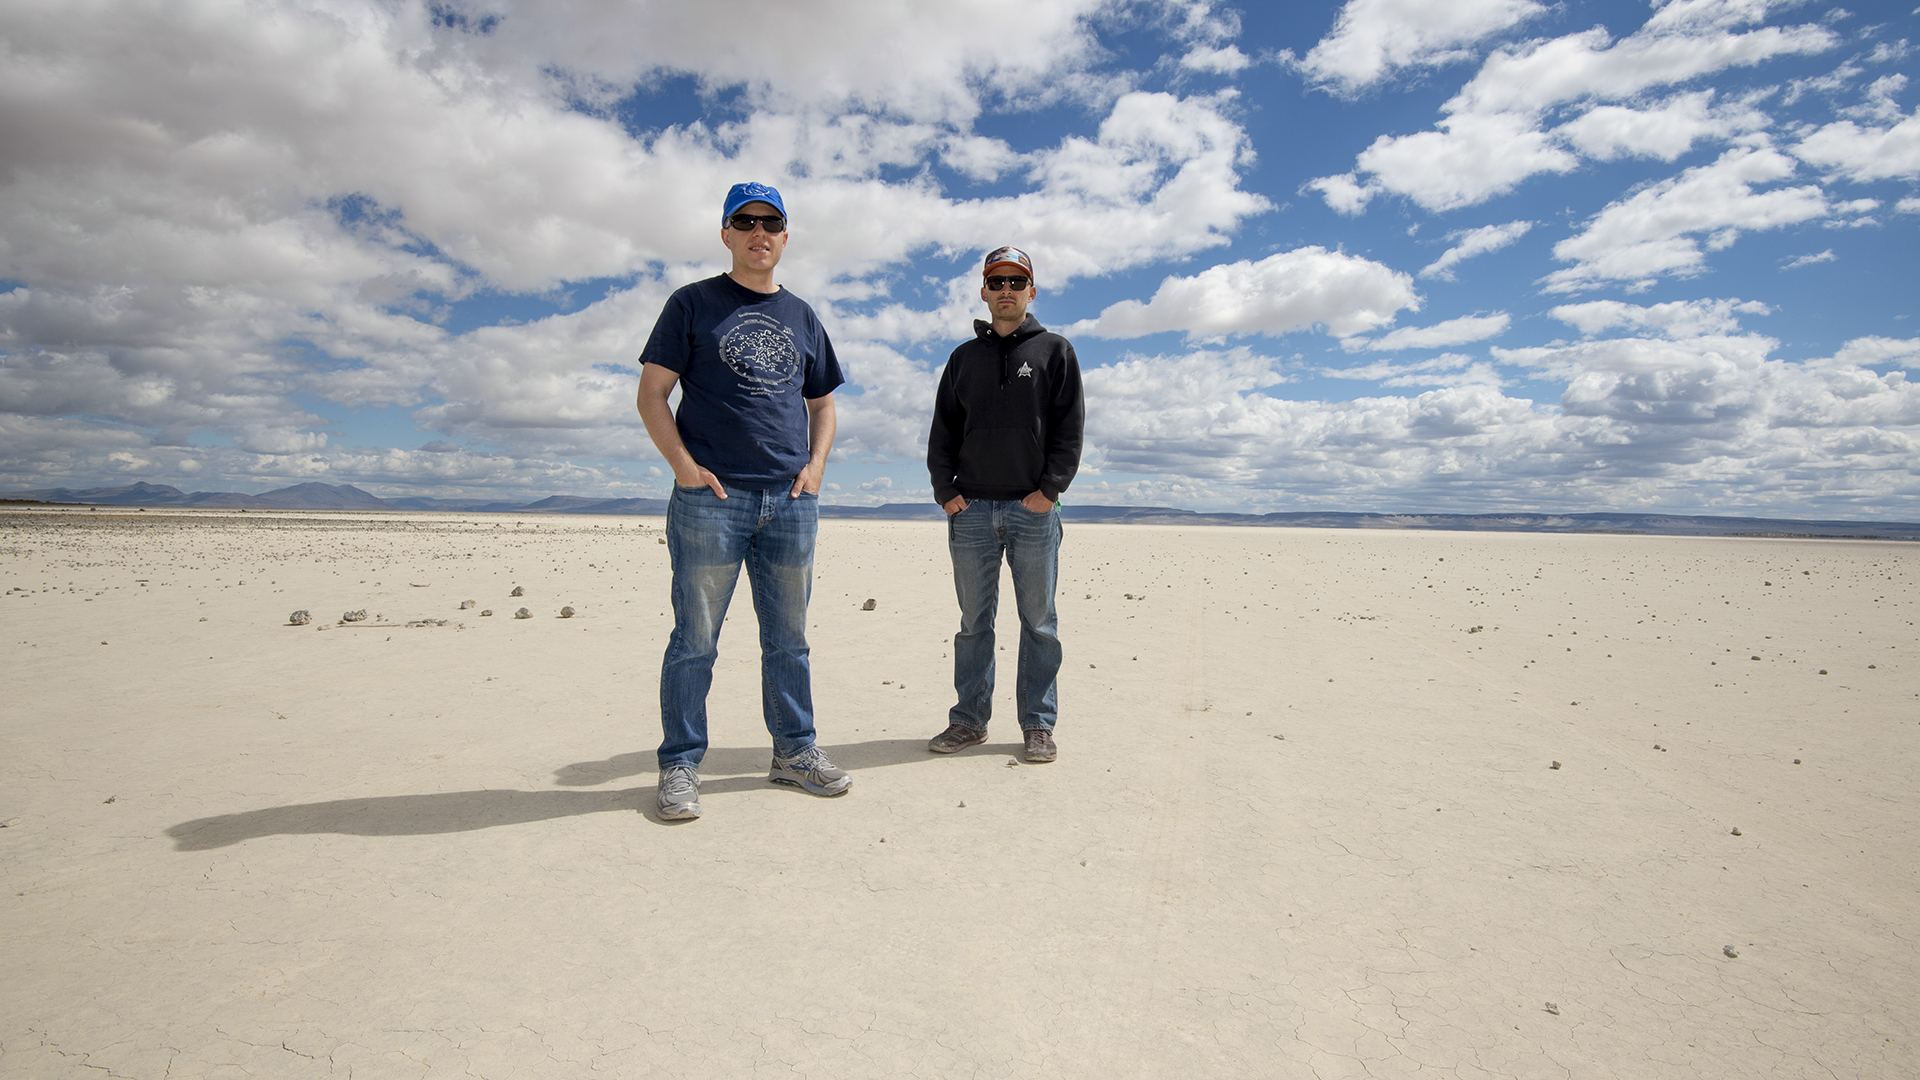 Two people standing in a wide, flat desert